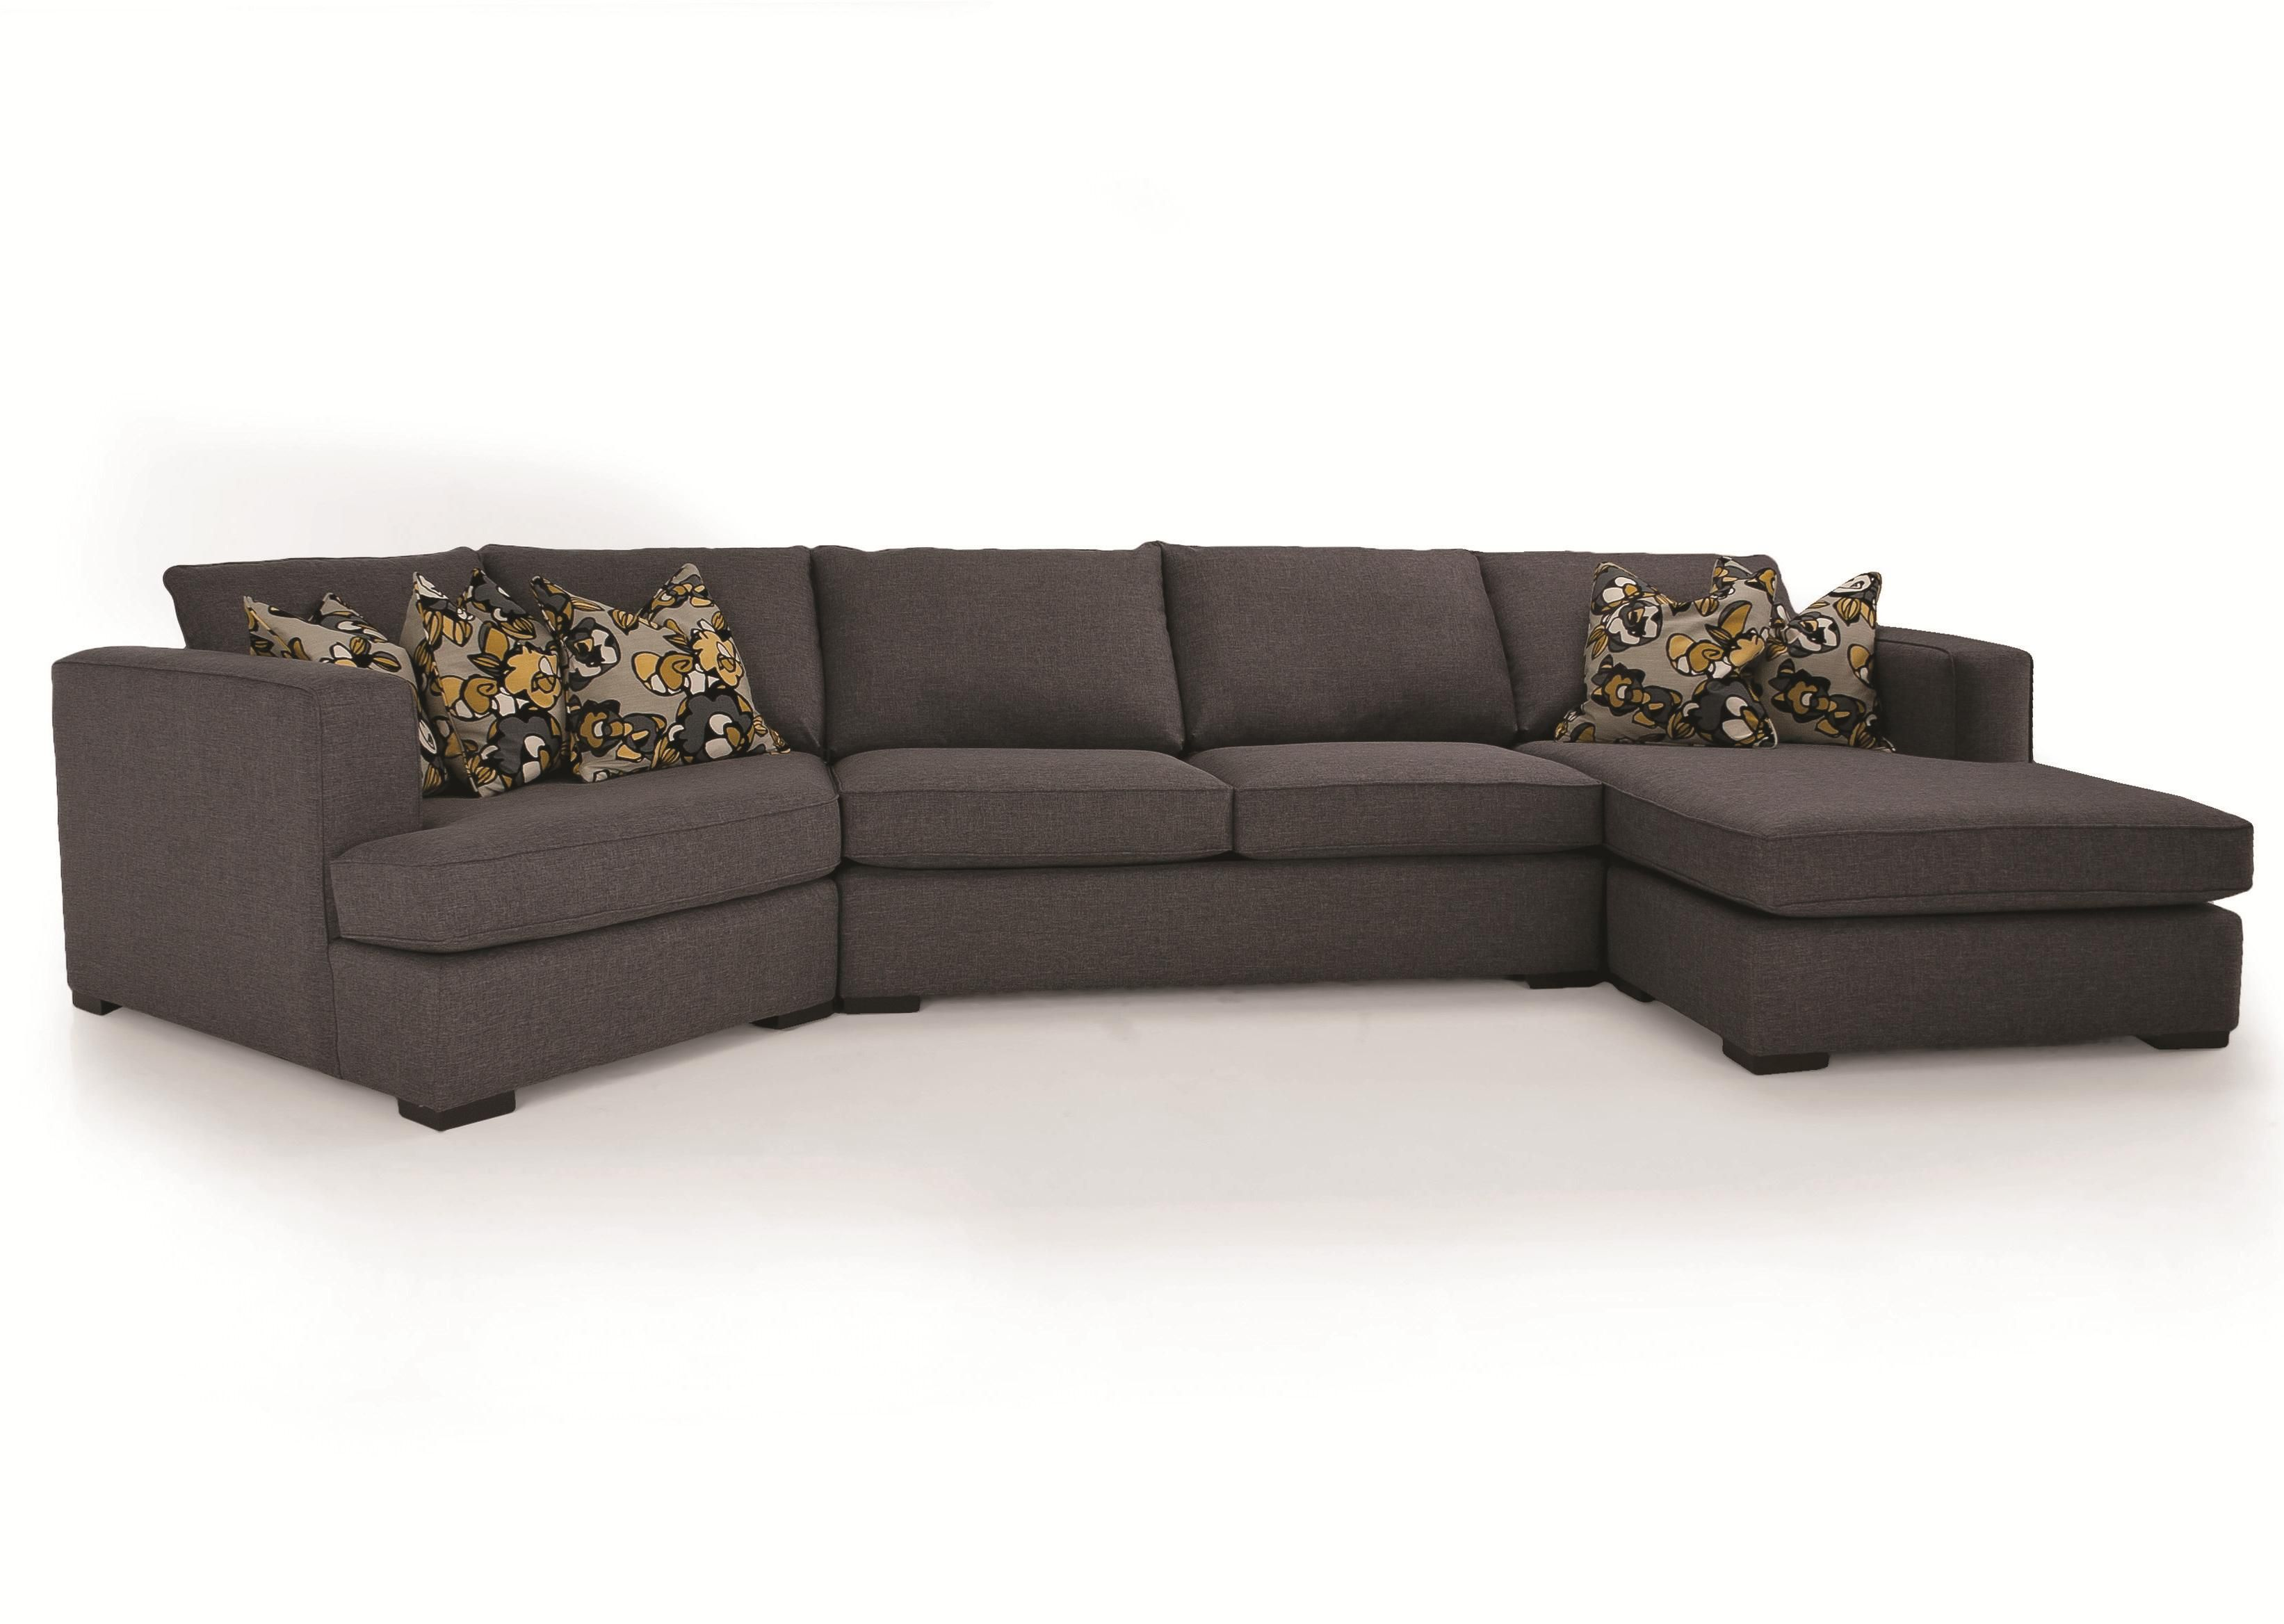 Decor Rest 2900 3 Piece Contemporary Sectional with LHF Cuddler at